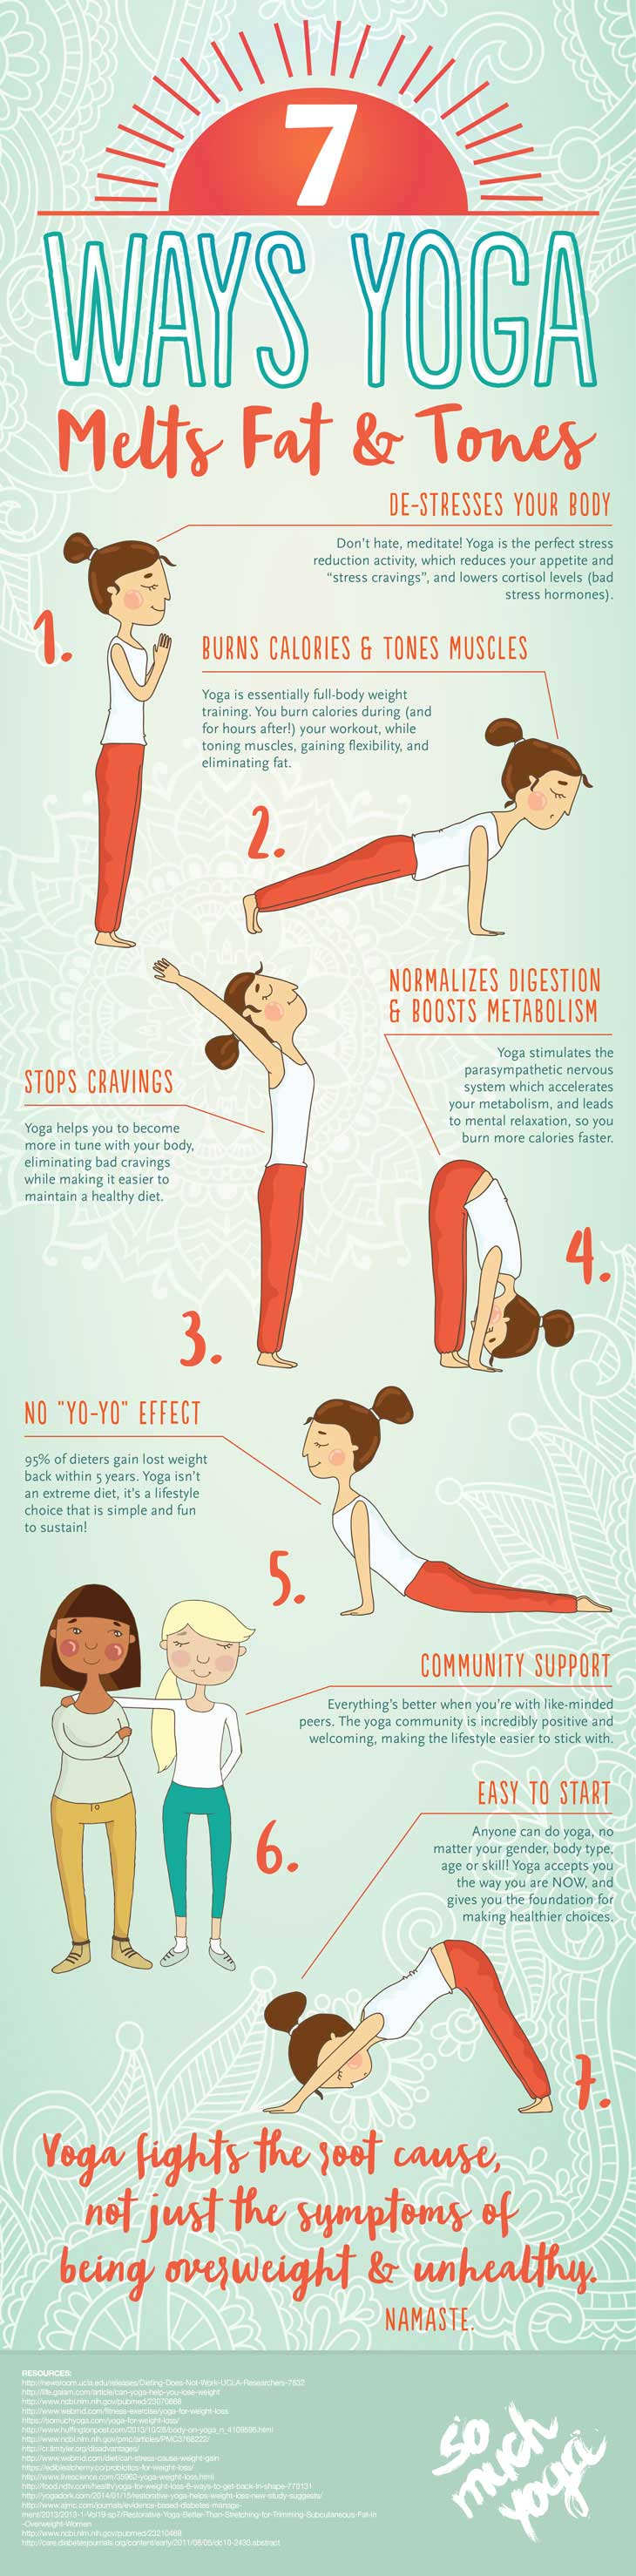 Yoga For Digestion And Weight Loss